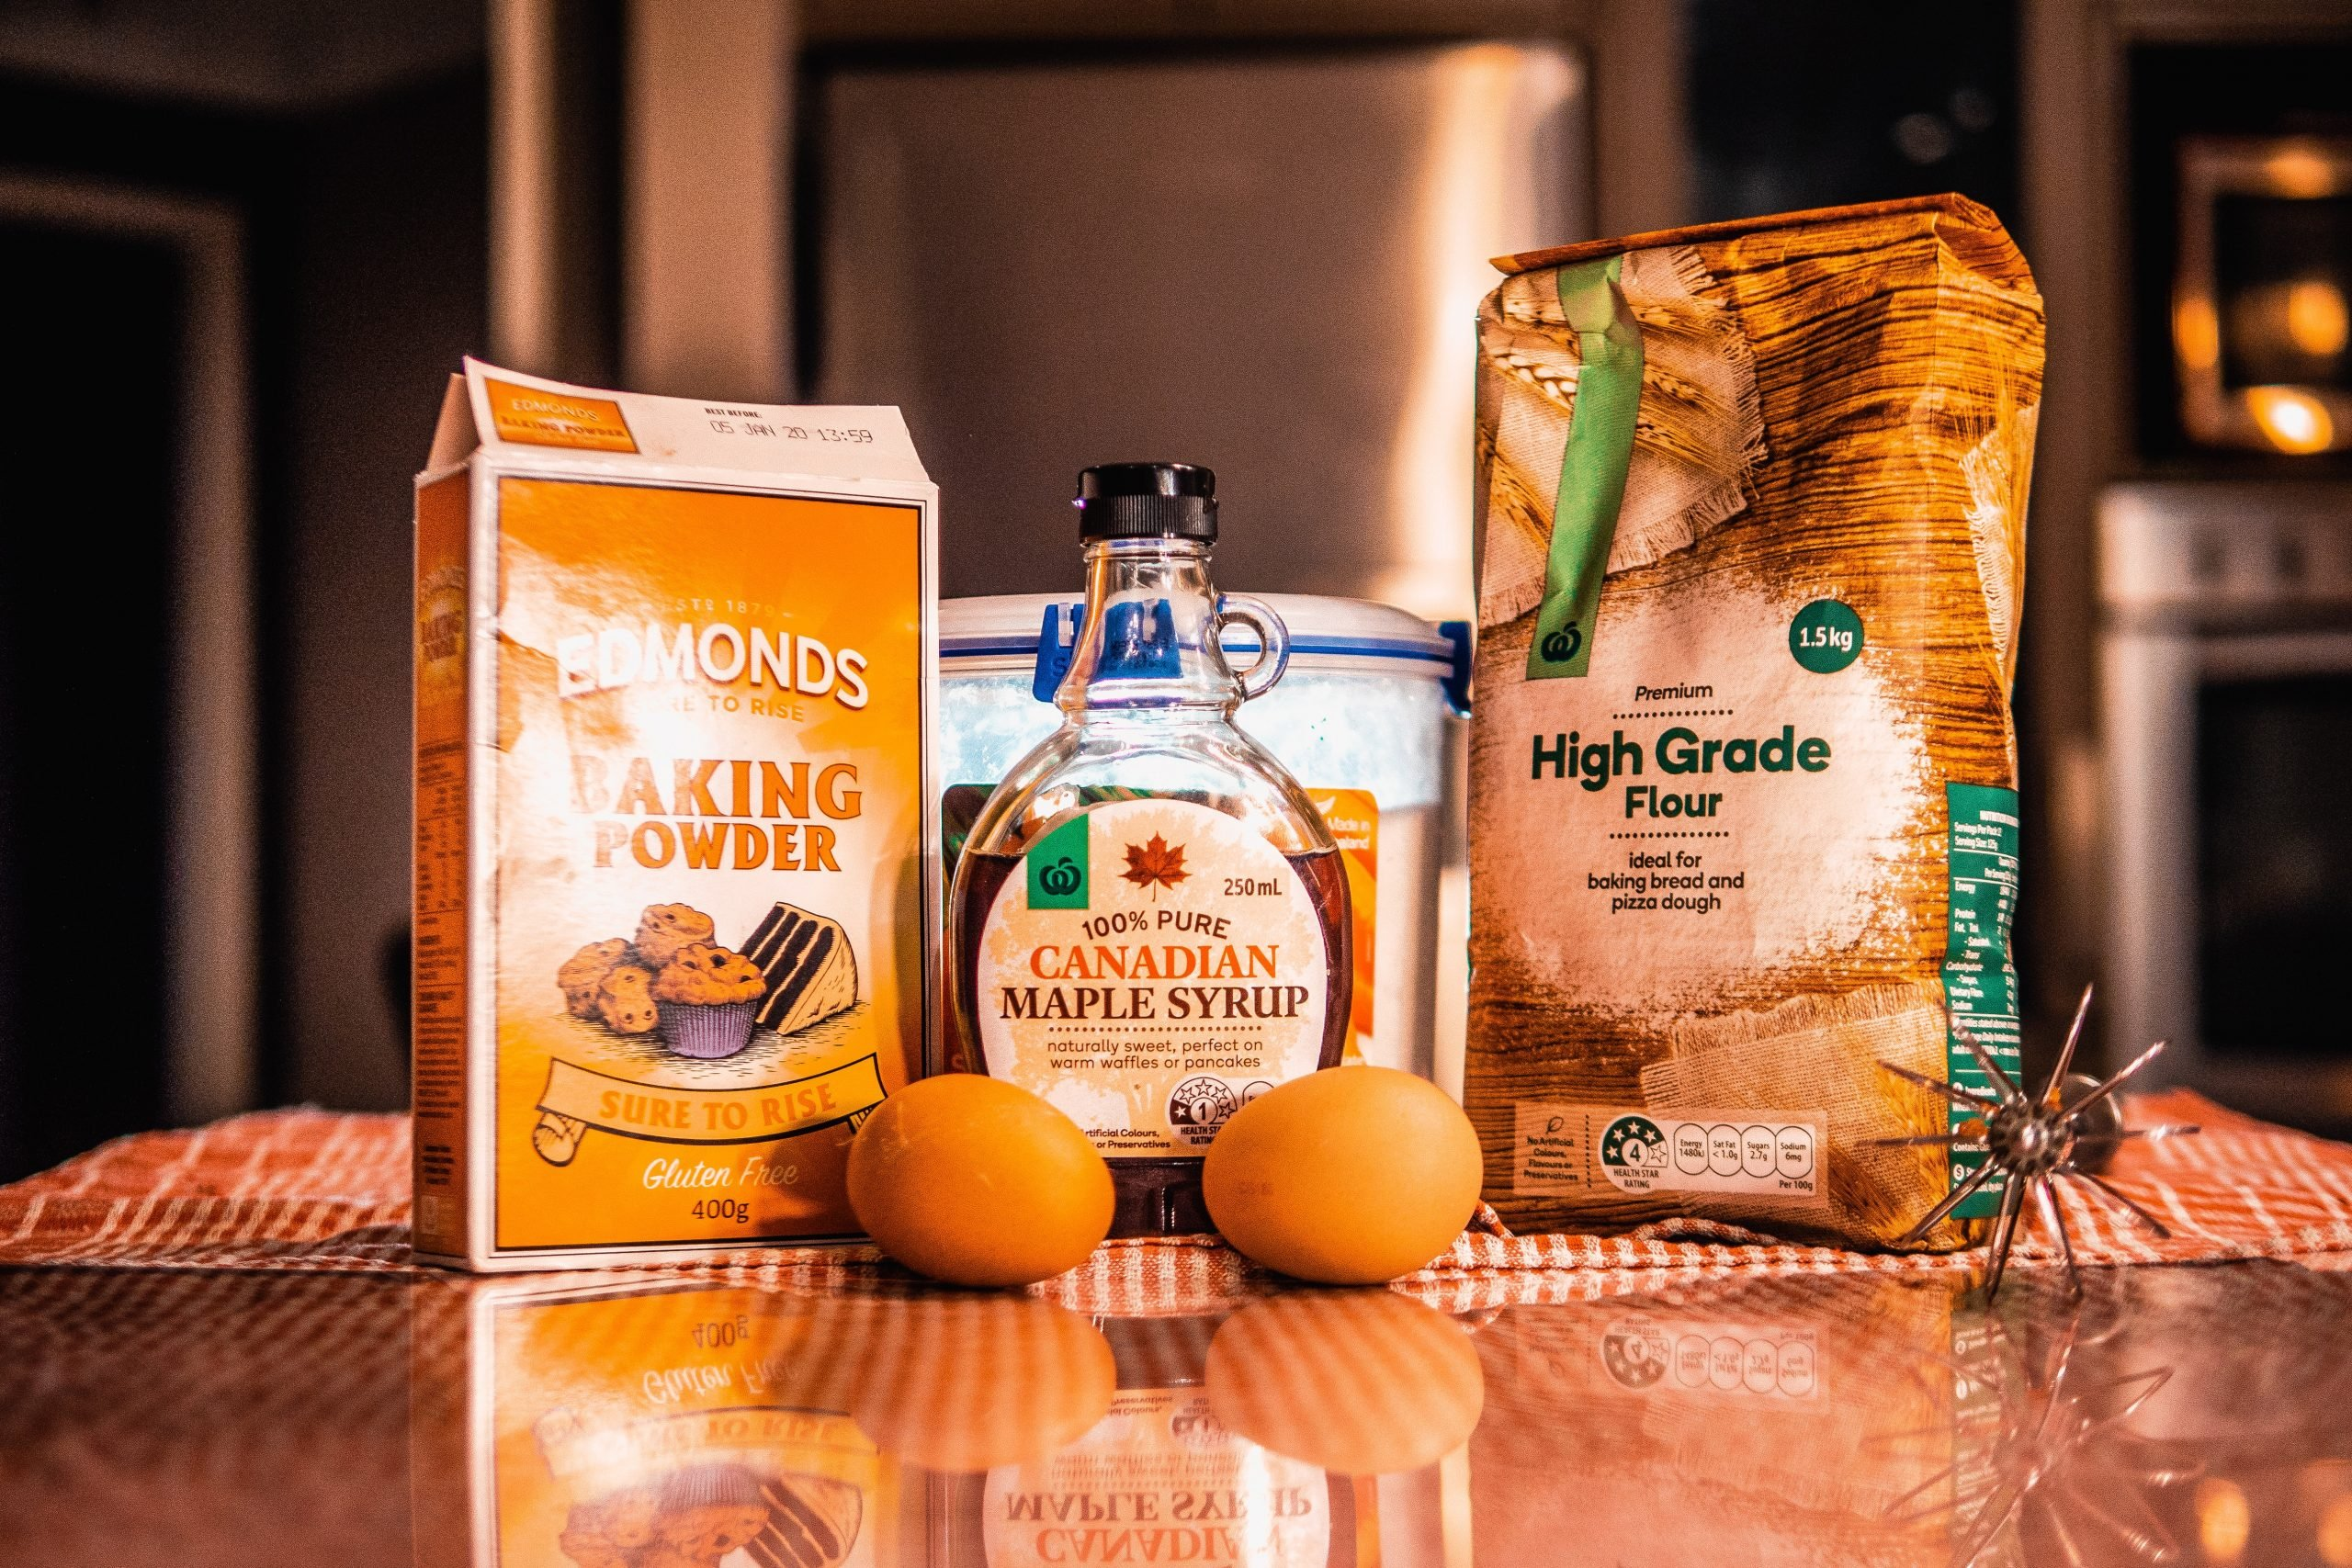 what is the difference between baking powder and baking soda?